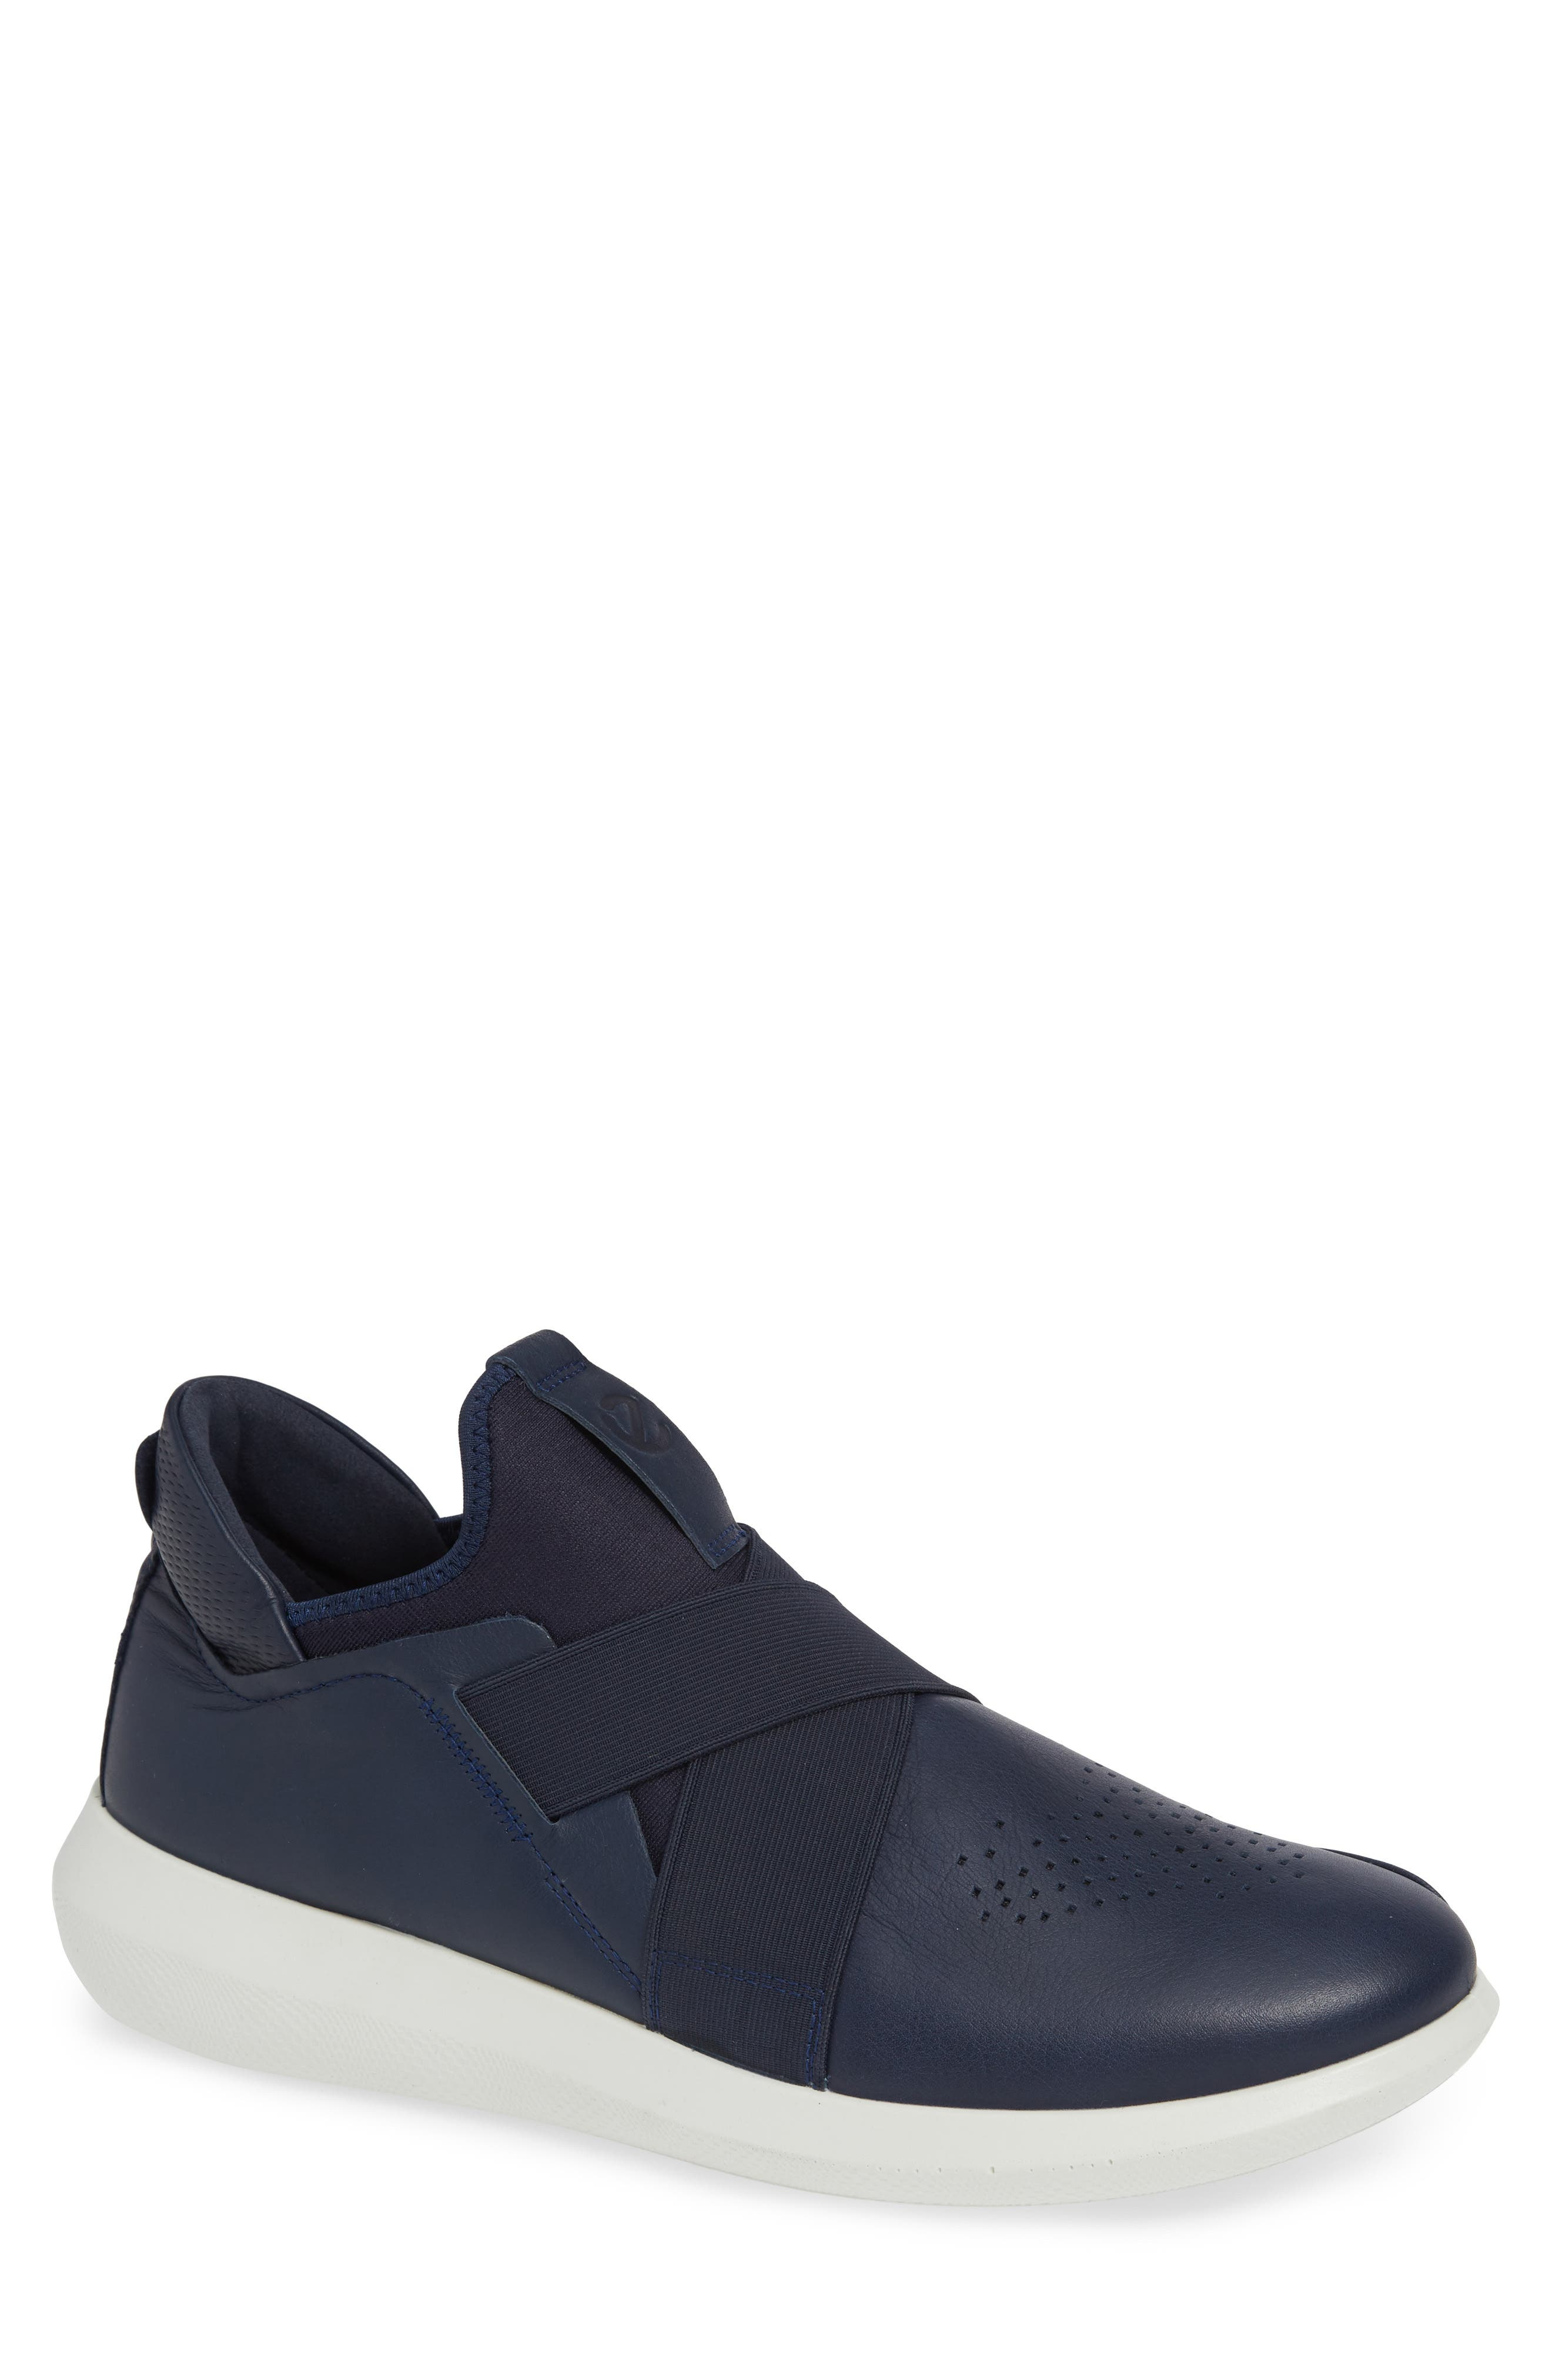 Scinapse Band Slip-On,                         Main,                         color, TRUE NAVY LEATHER